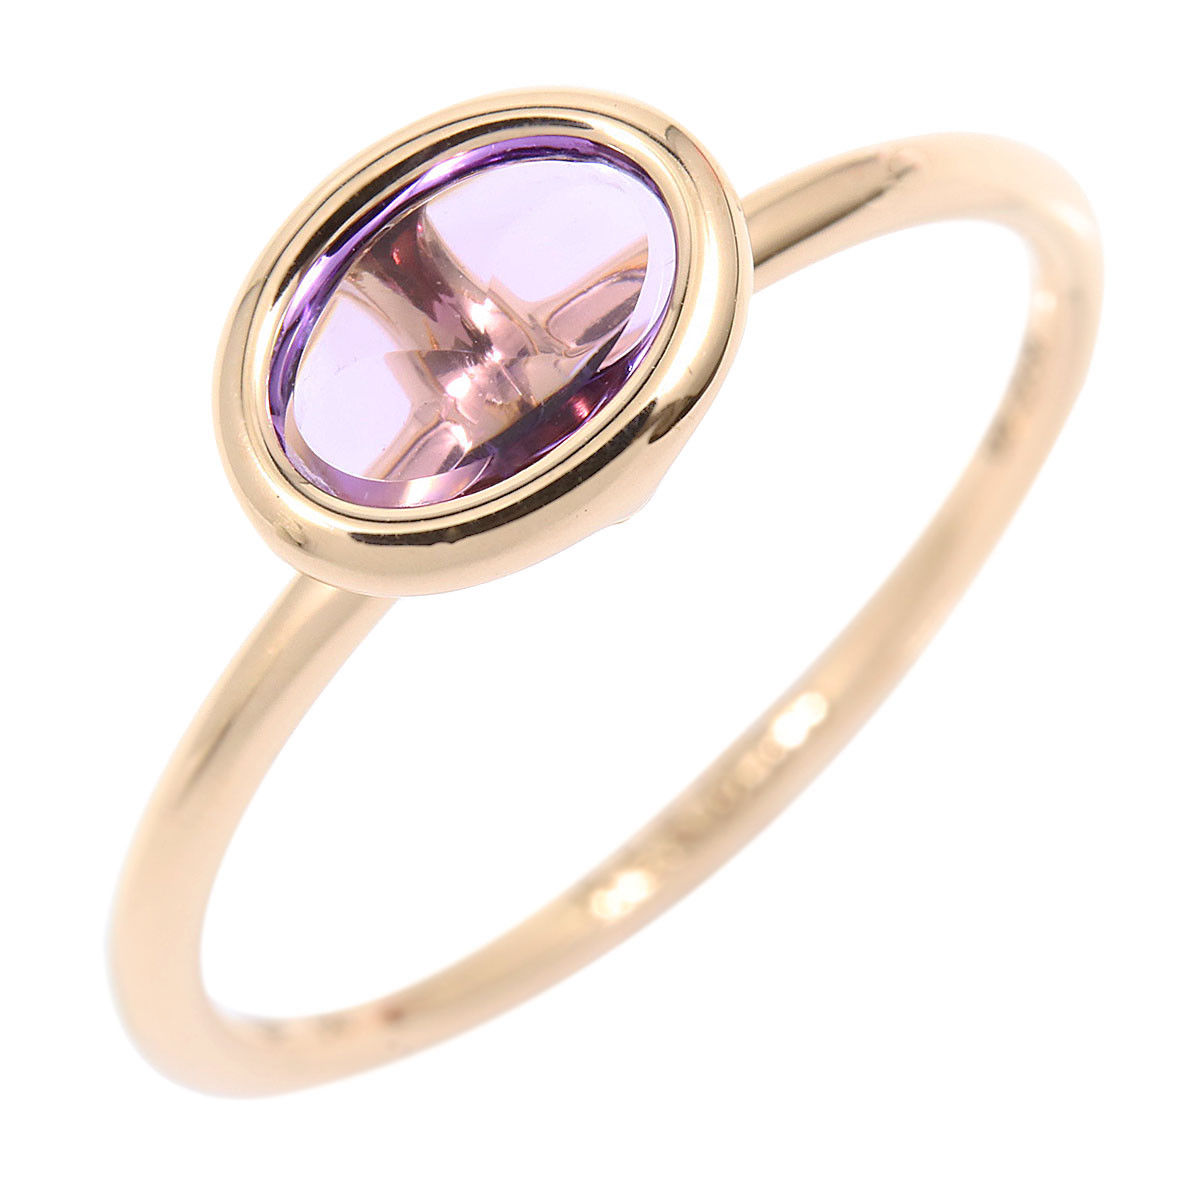 "Image of ""Hermes 18K Rose Gold with Amethyst Ring Size 5.25"""